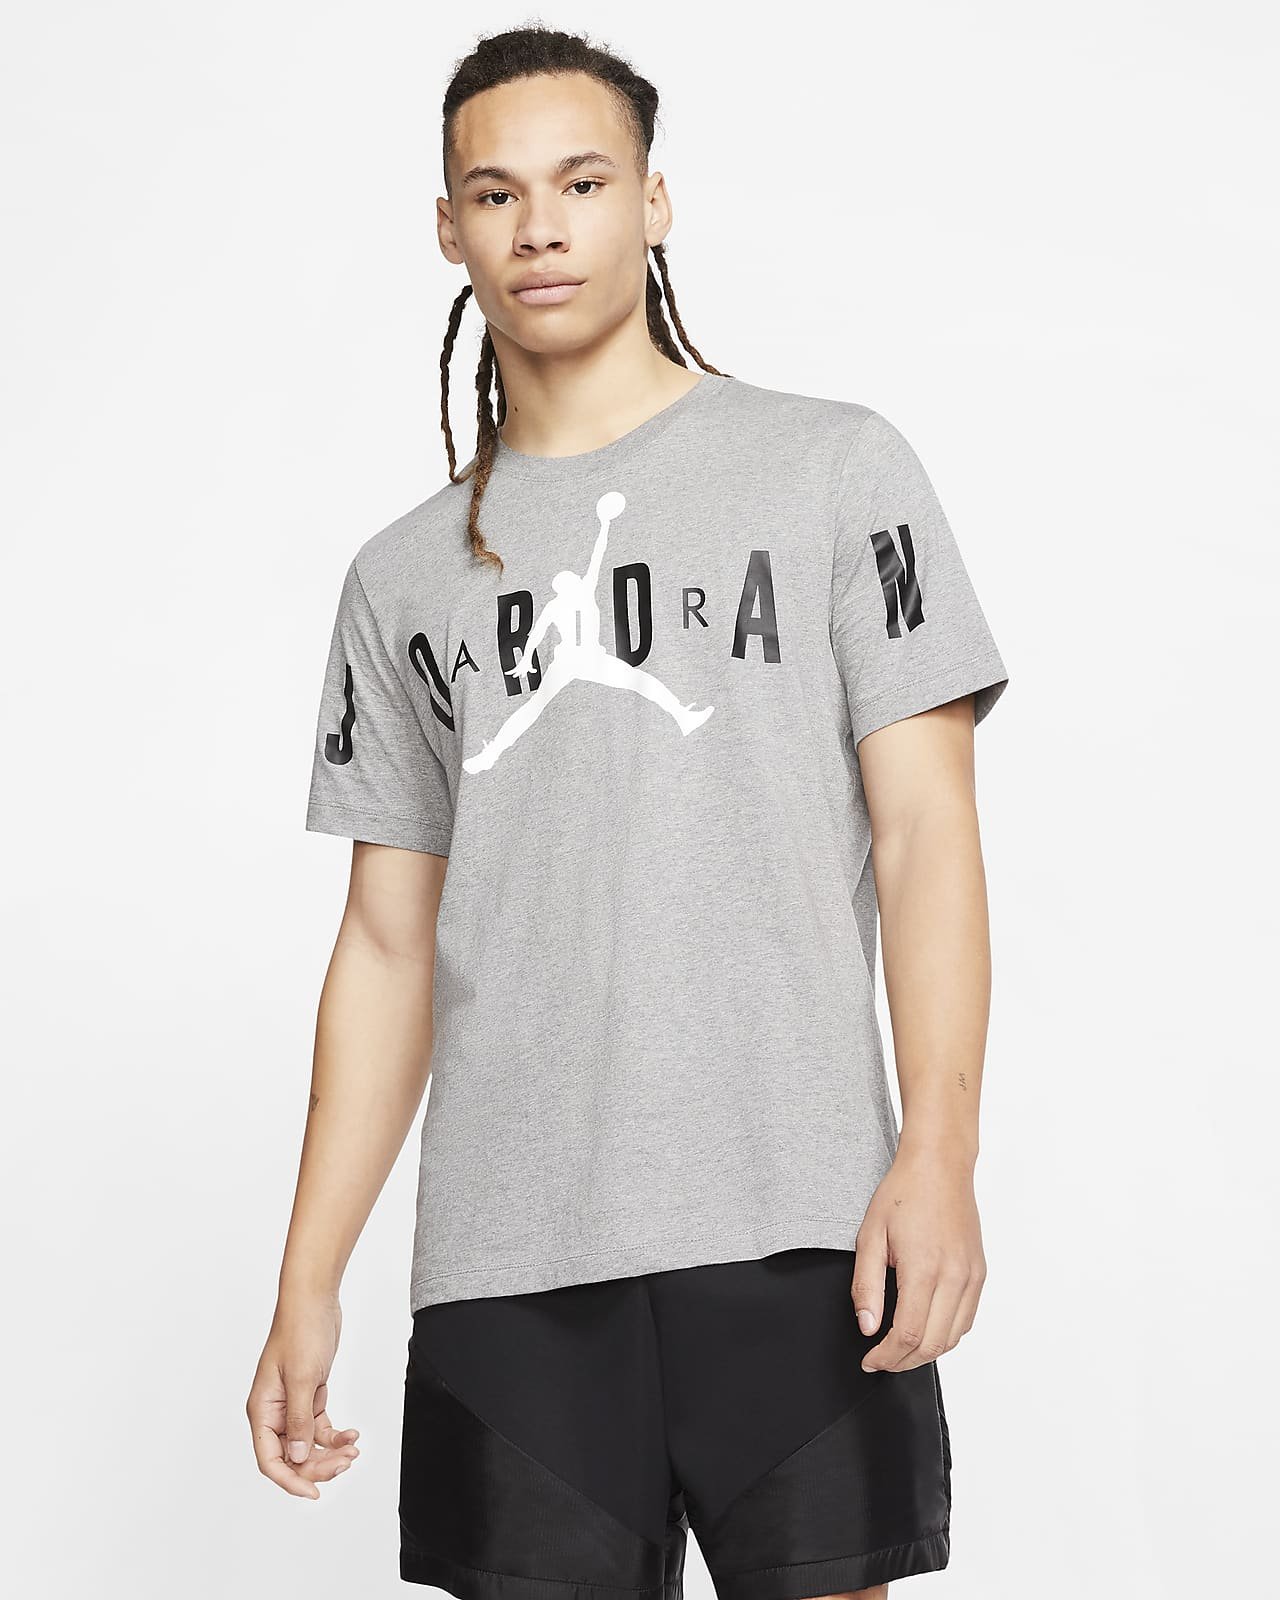 Jordan Stretch Men's Short-Sleeve Crew